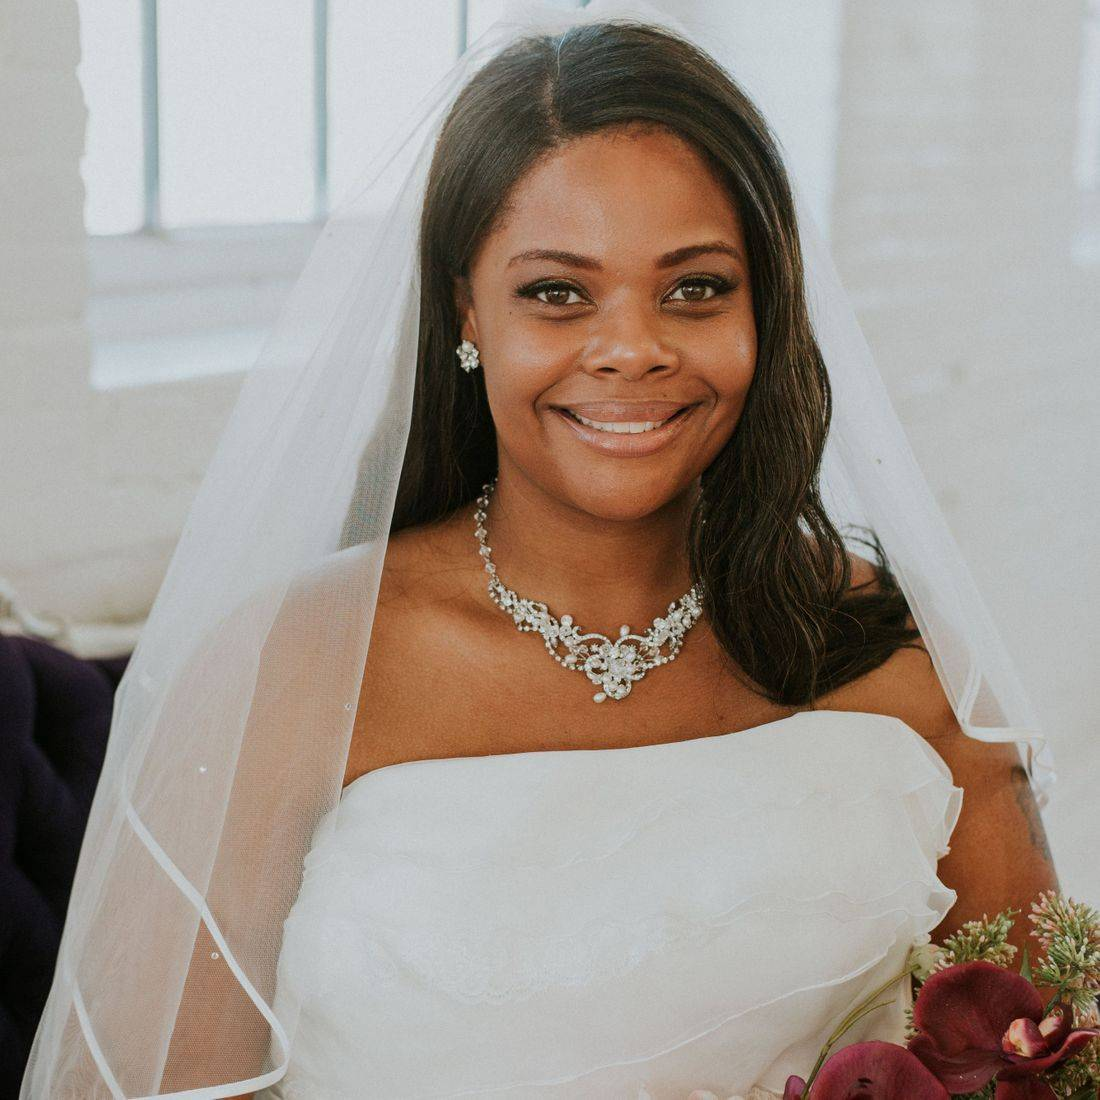 Plus Size Bridal in Grand Rapids